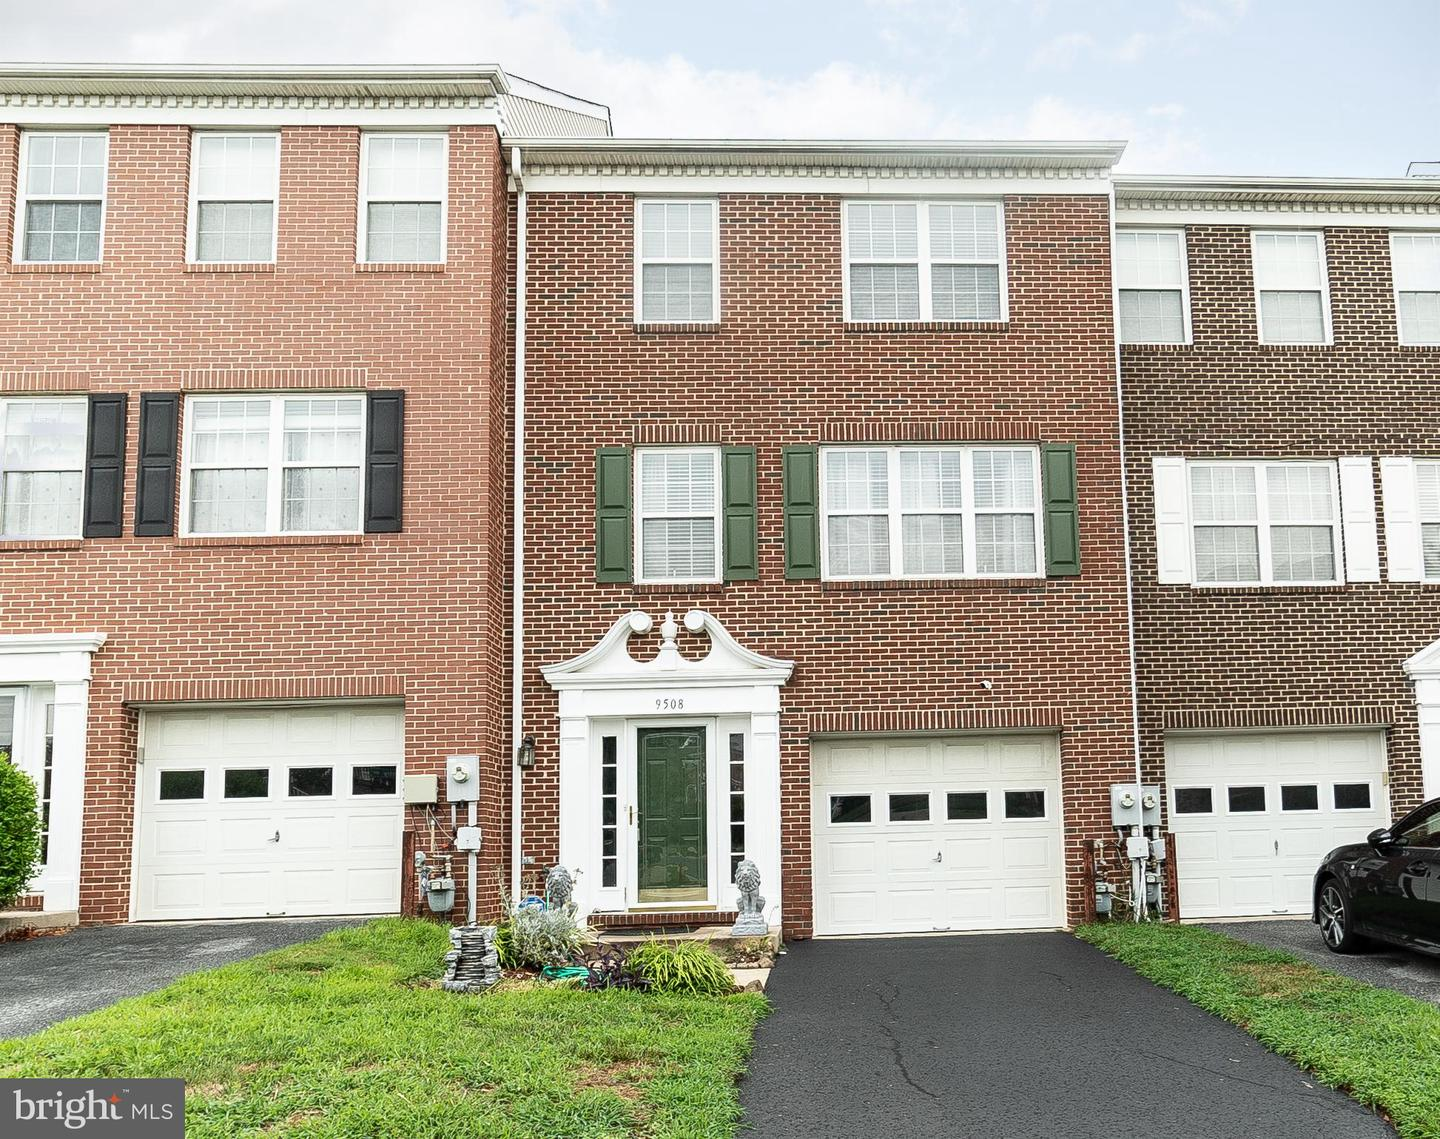 9508 Coventry Way   - Owings Mills, Maryland 21117